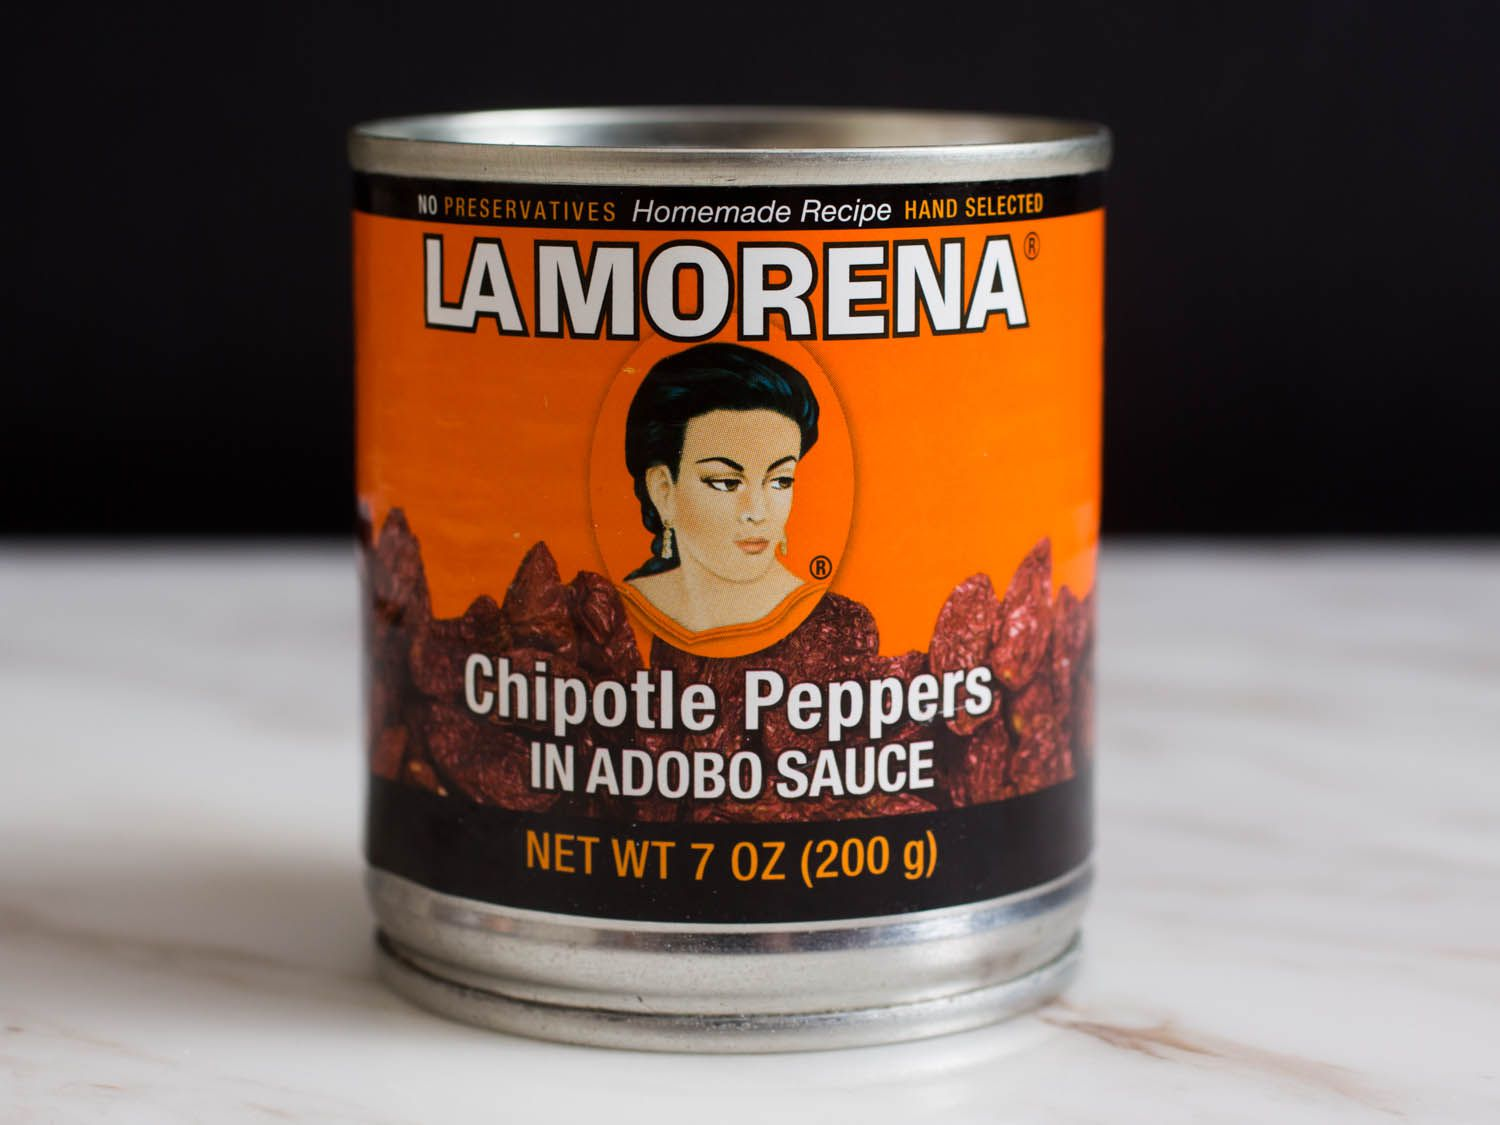 20150323-staff-pantry-picks-chipotle-peppers-adobo-vicky-wasik-4-4.jpg